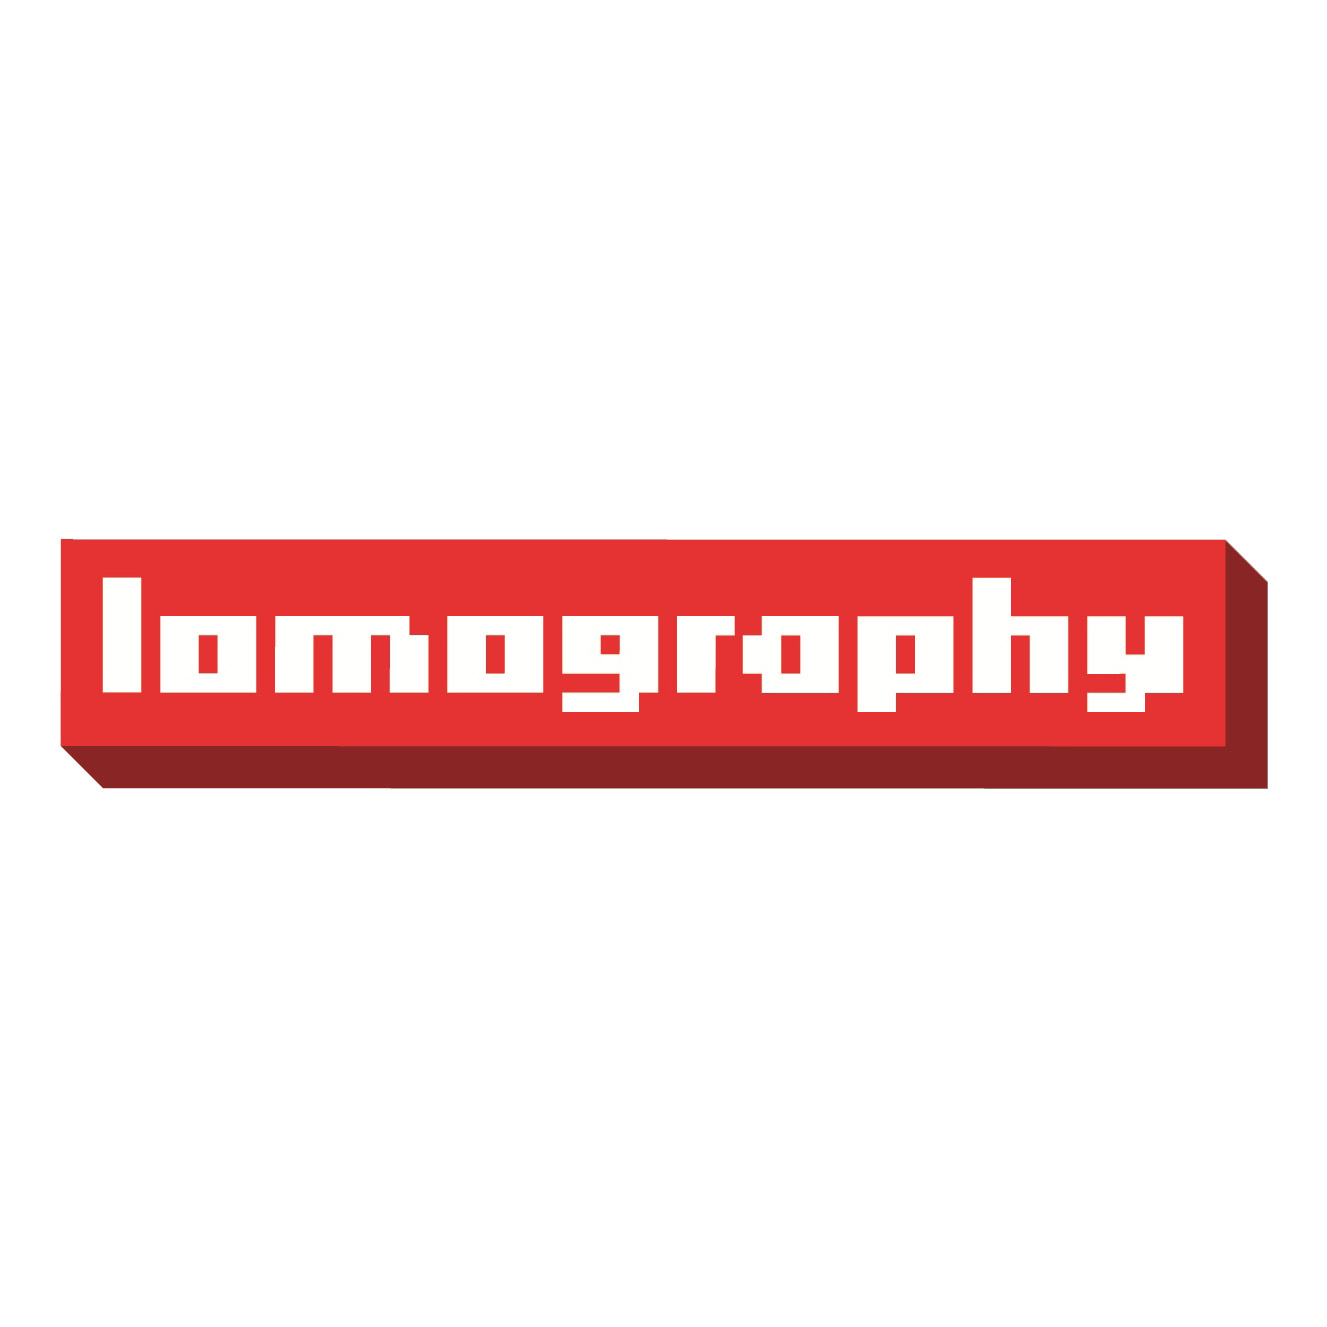 Lomography_Logo copy.jpg